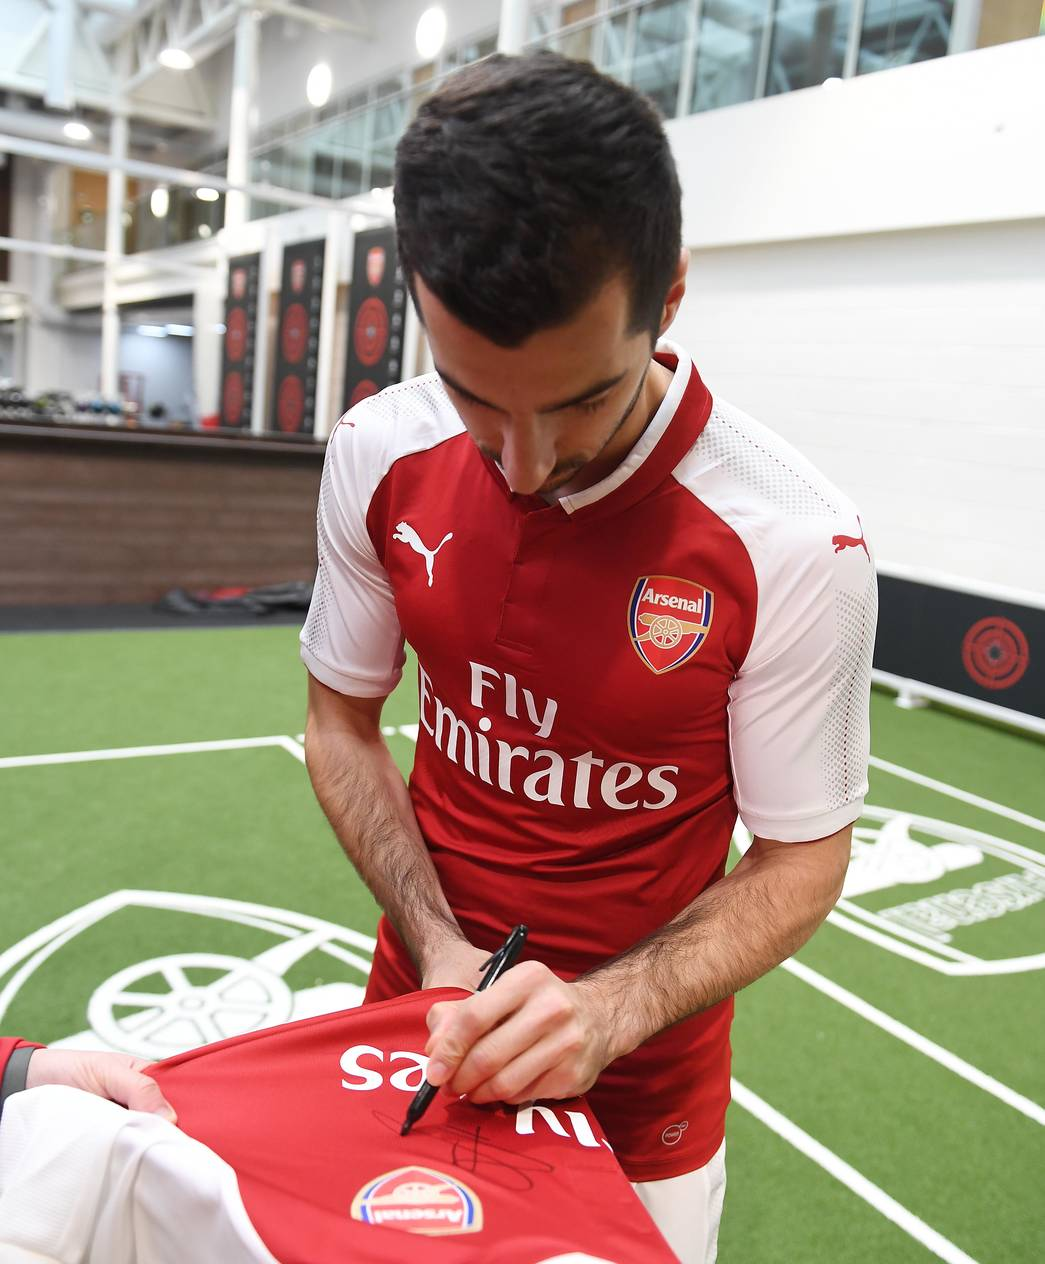 best service 84e8a c08e8 Pictures: Henrikh Mkhitaryan in Arsenal kit   Gallery   News ...